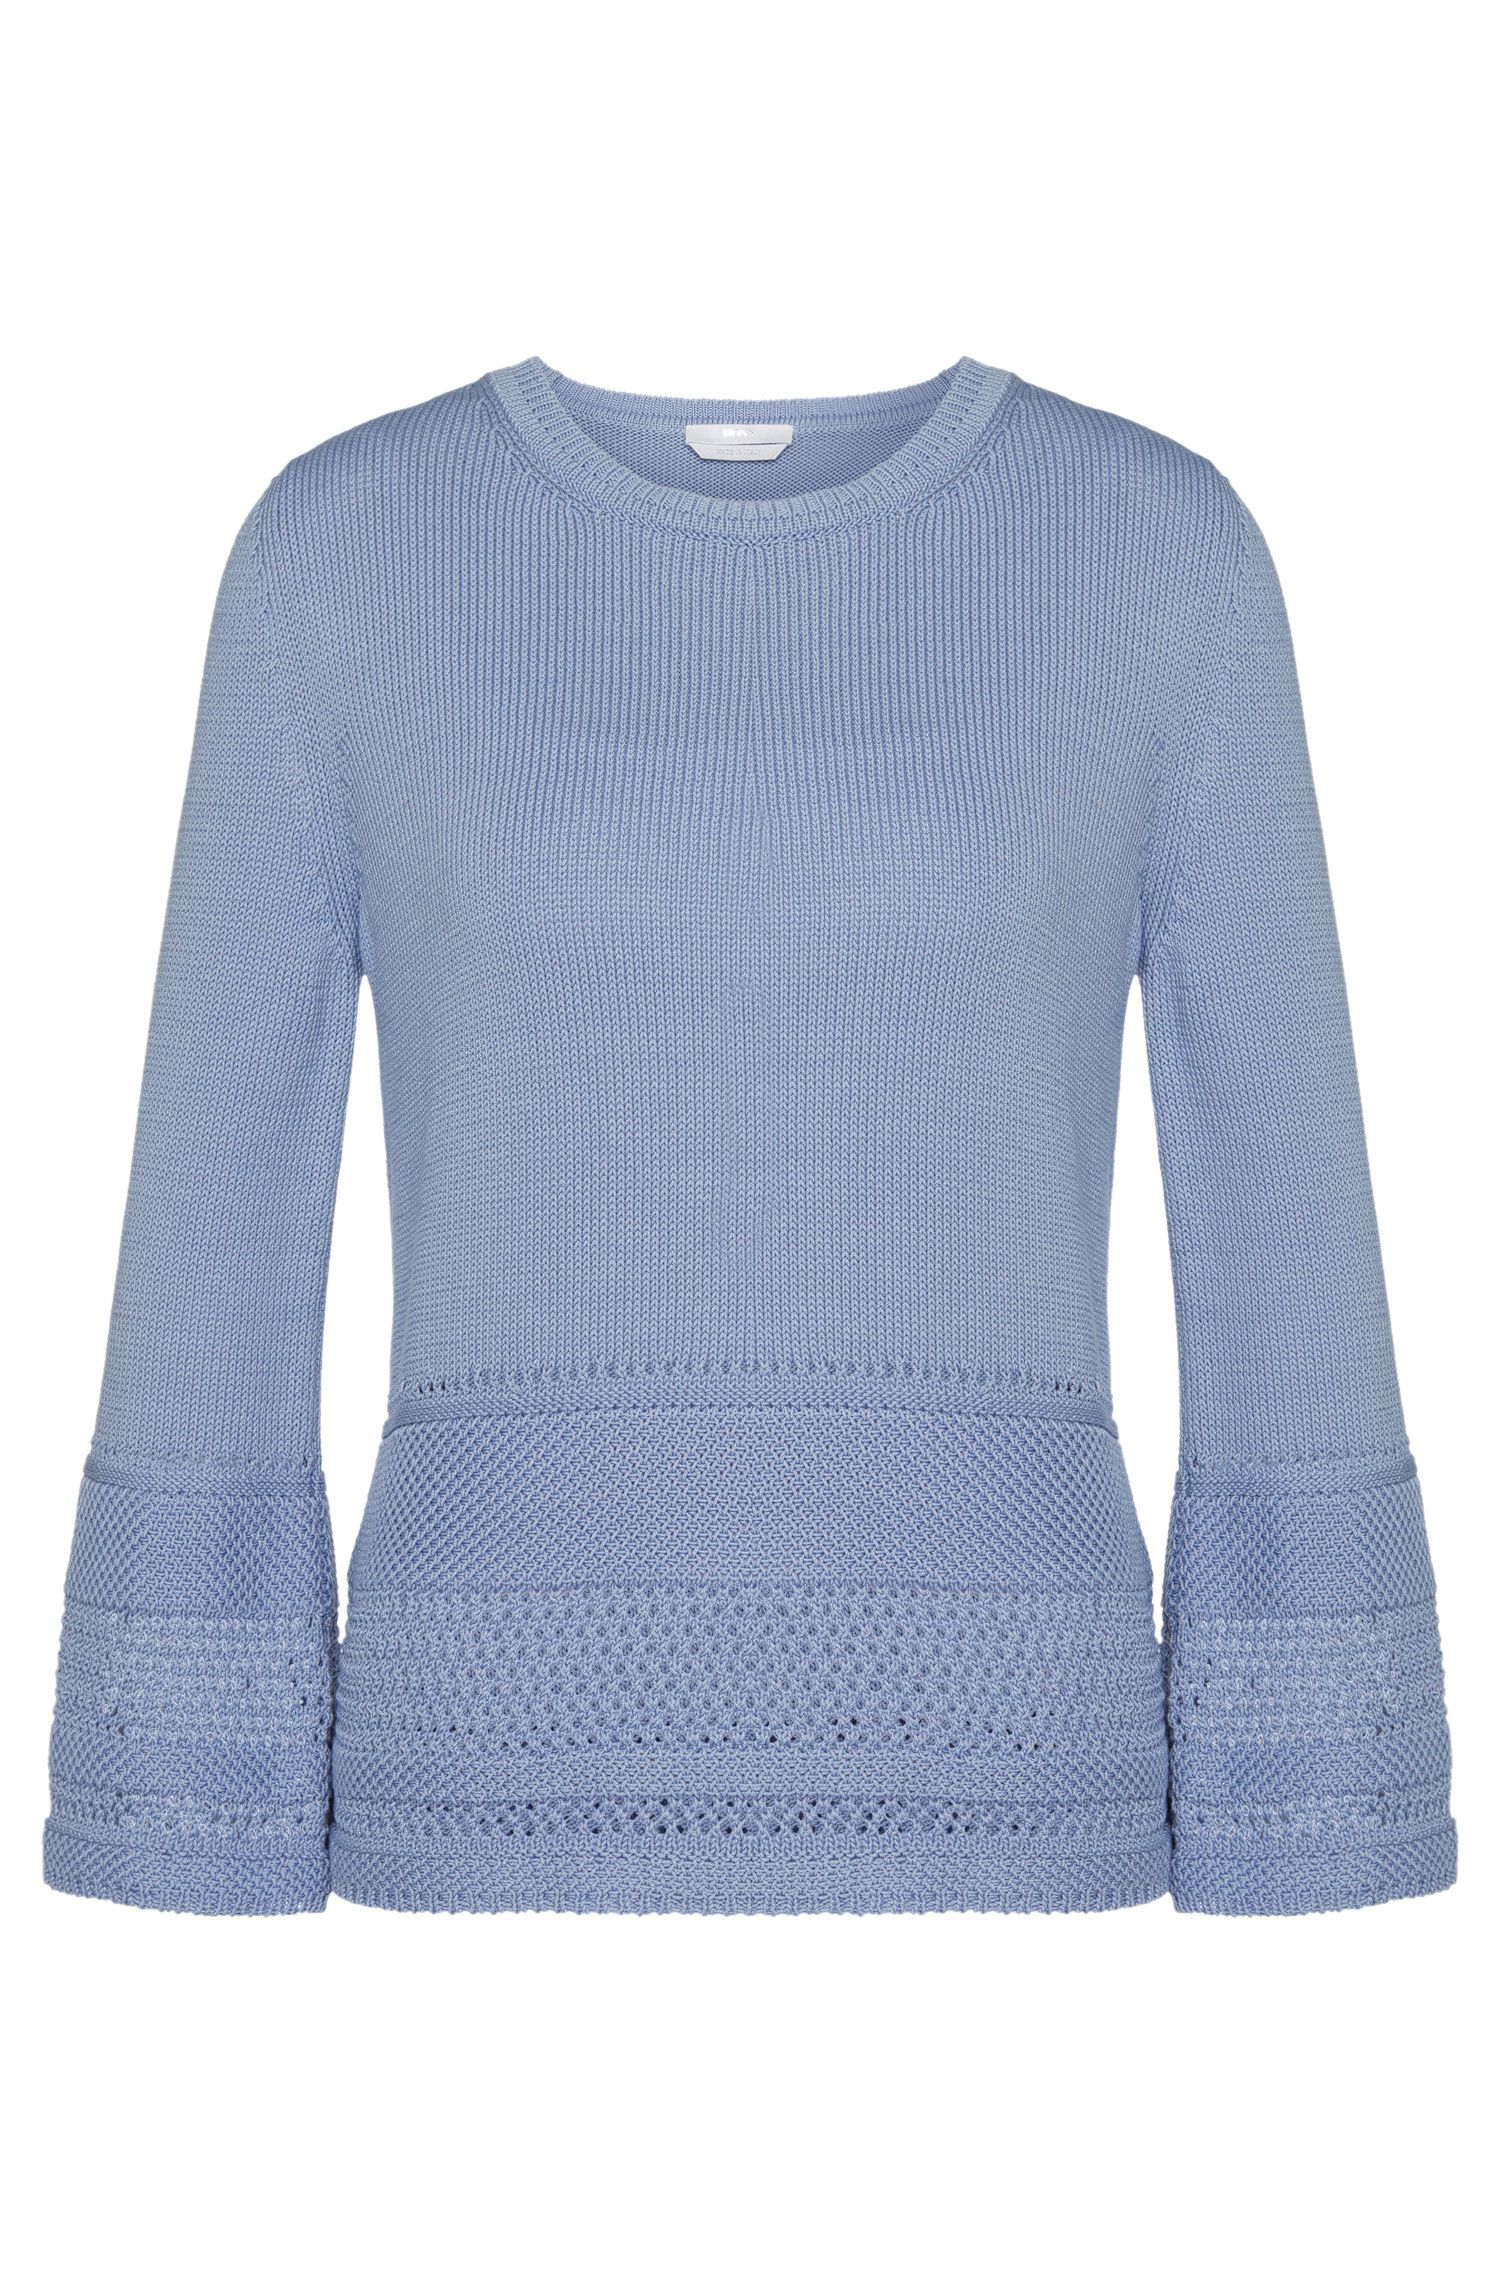 Sweater in cotton with a perforated pattern: 'Fanchoni'